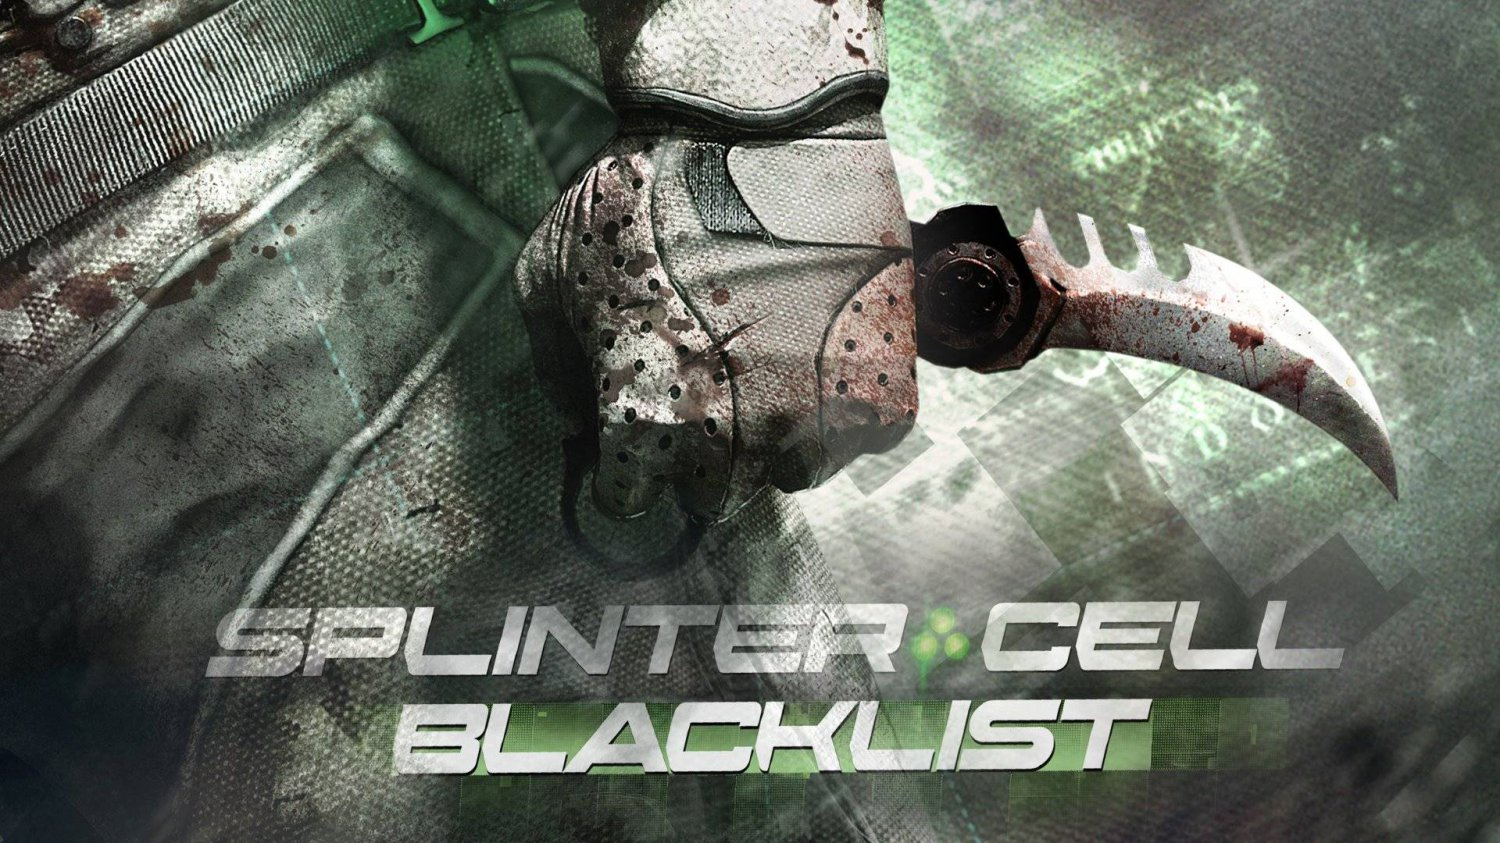 Tom Clancy's Splinter Cell: Blacklist Windows PC Game Download Uplay CD-Key Global